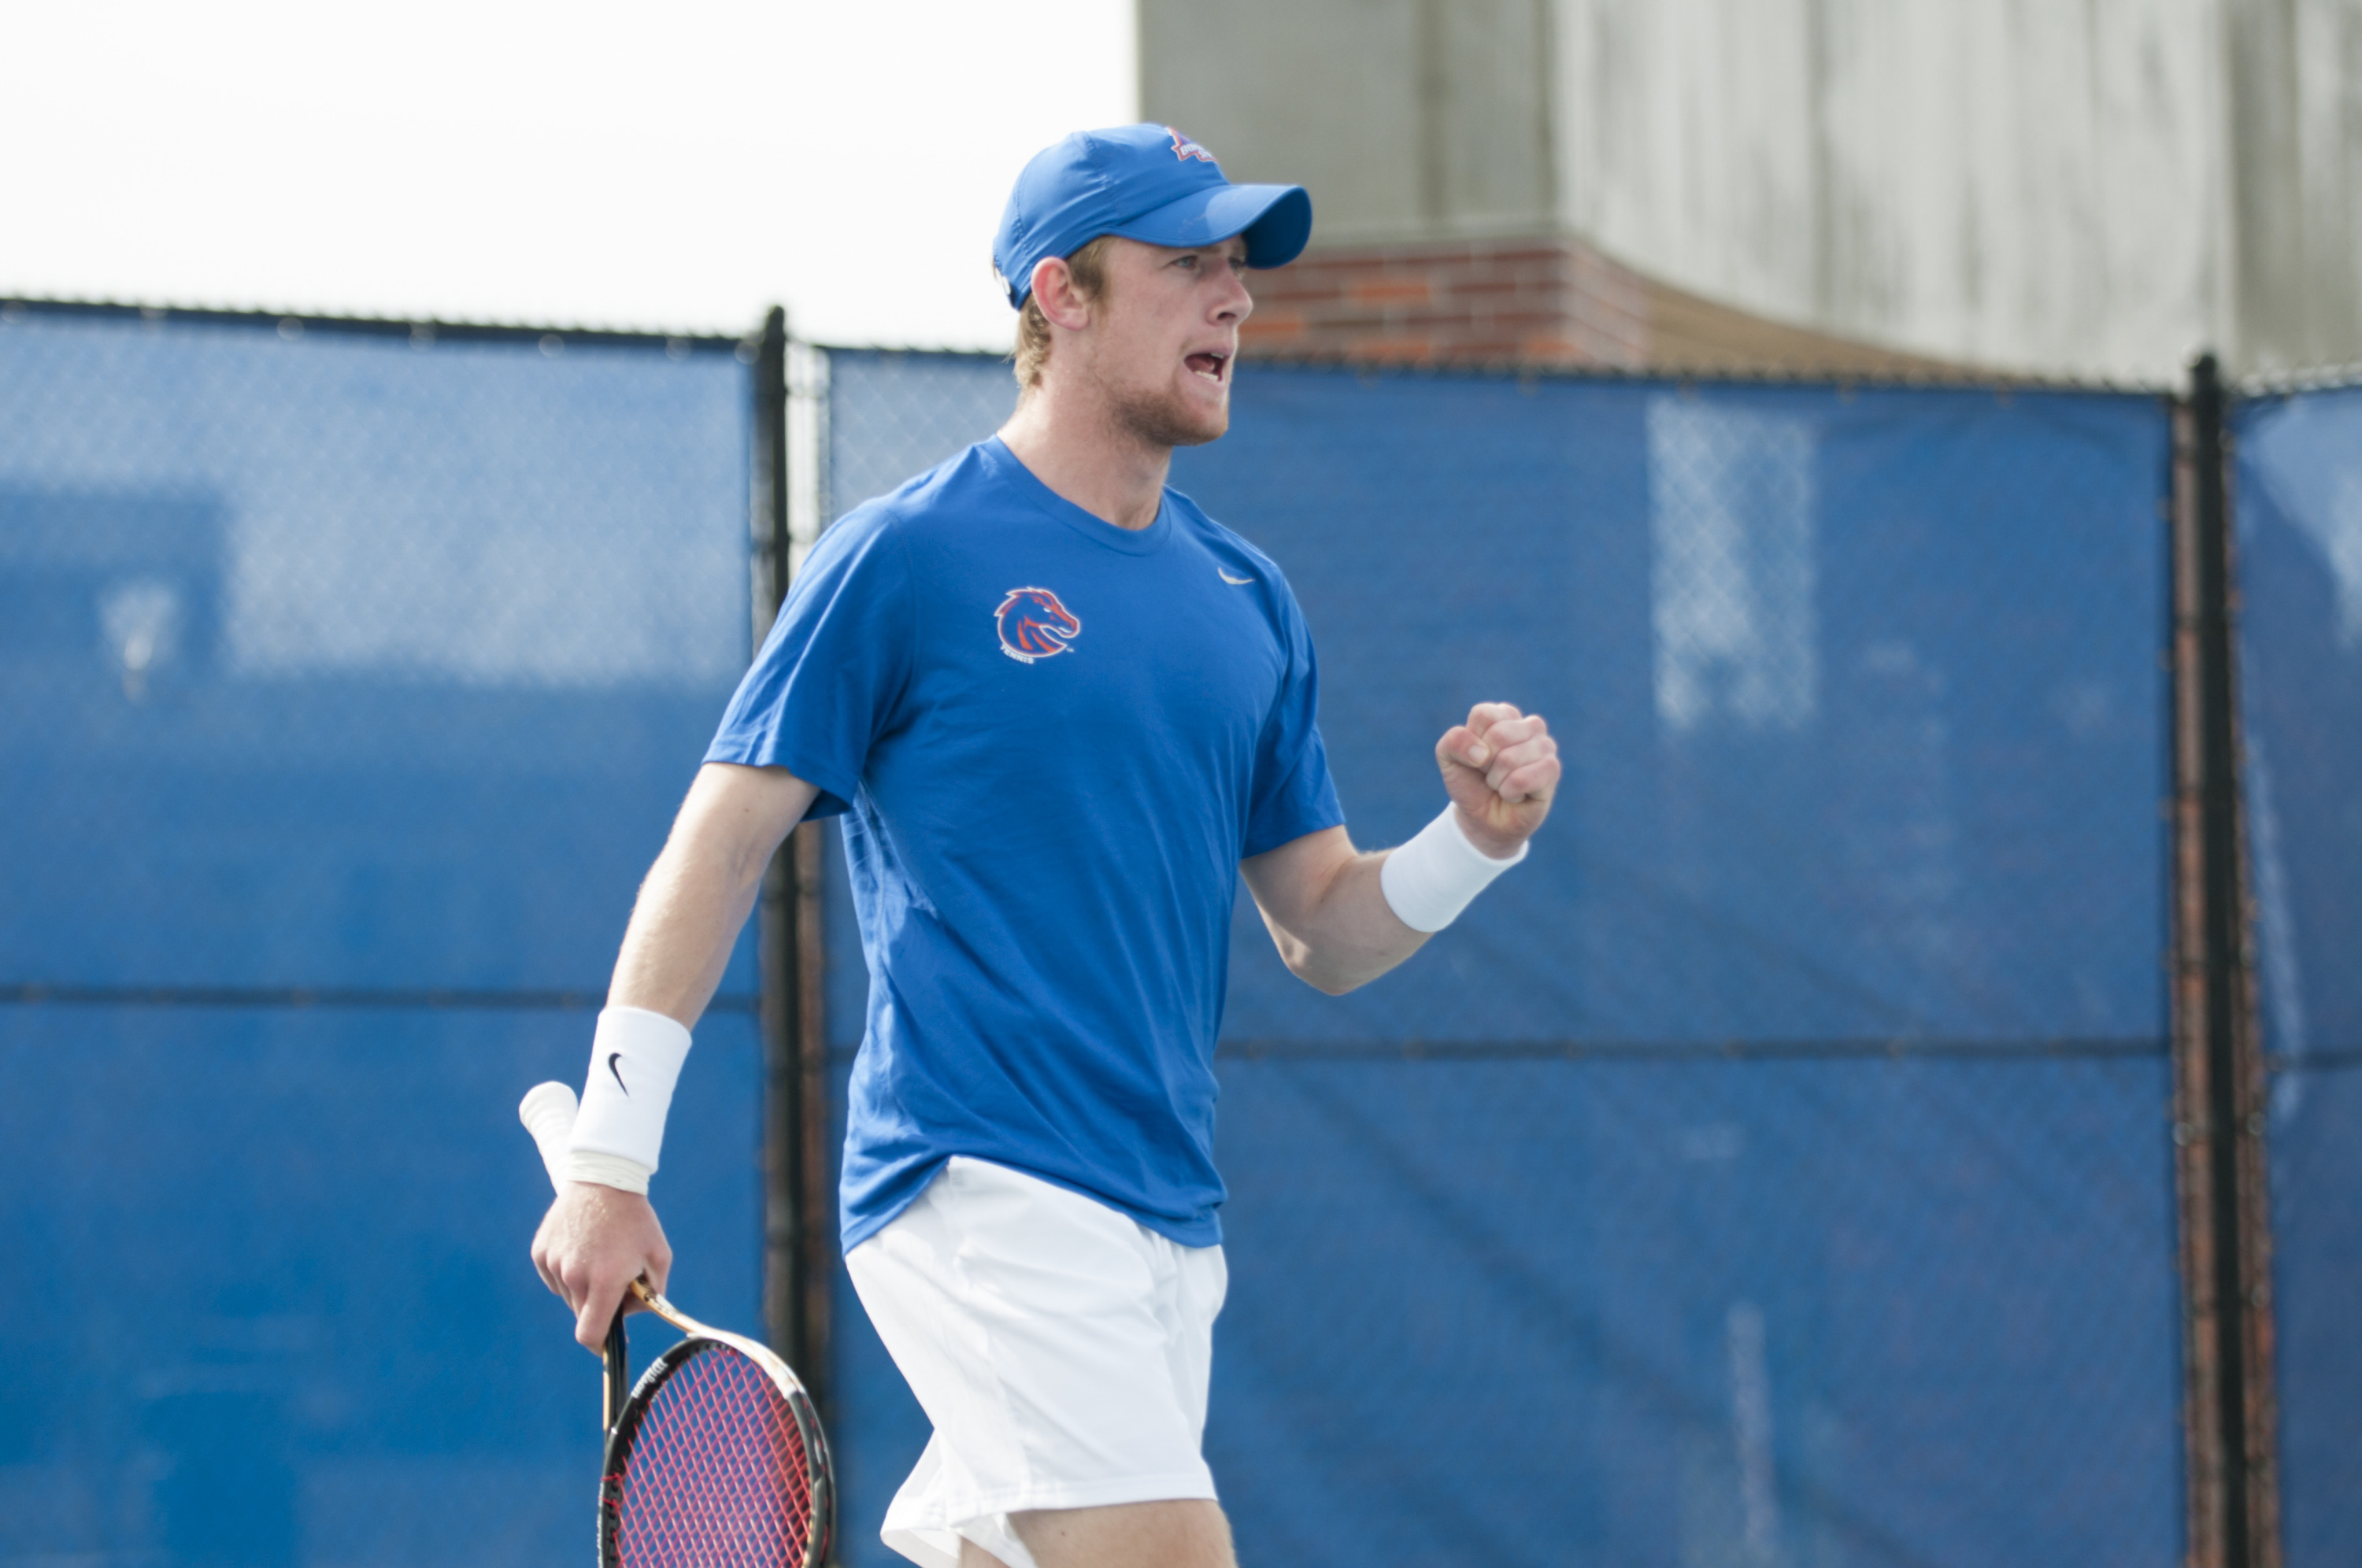 Andy Bettles ranked 83rd nationally will be facing No. 84 Leandro Toledo at No. 1 singles